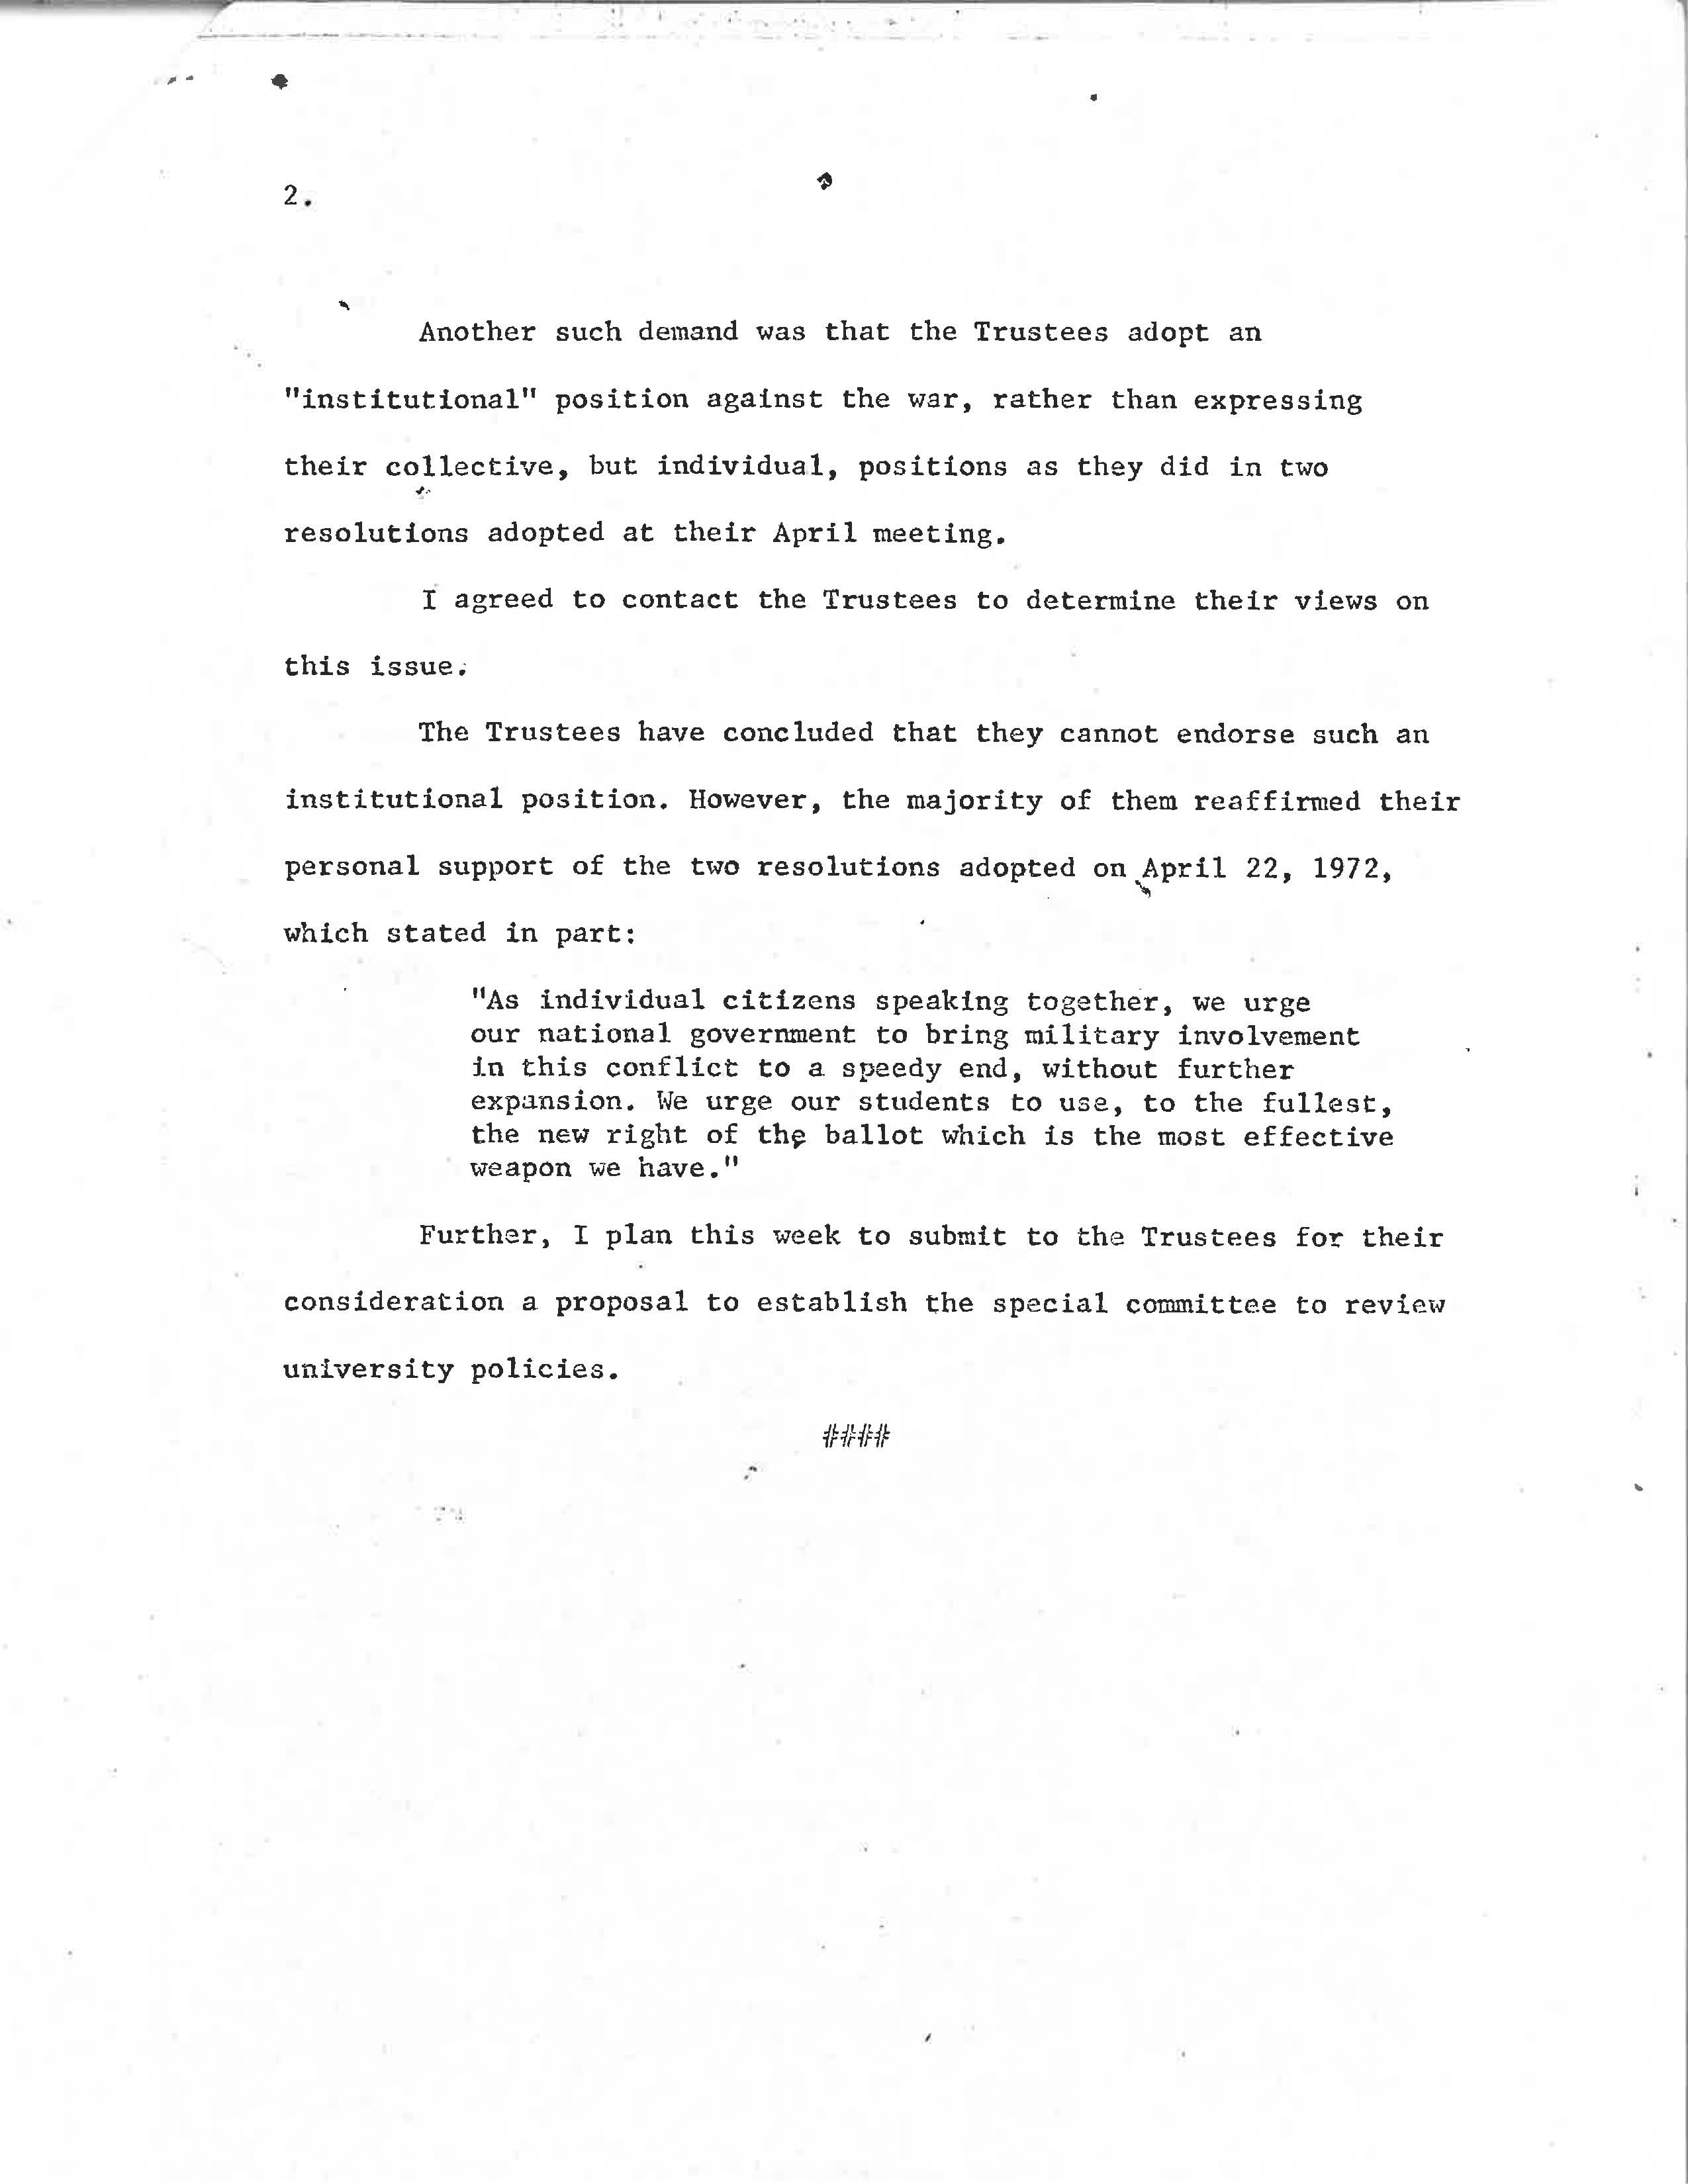 on the banks of the red cedar president wharton statement on anti president wharton statement on anti war demands page 2